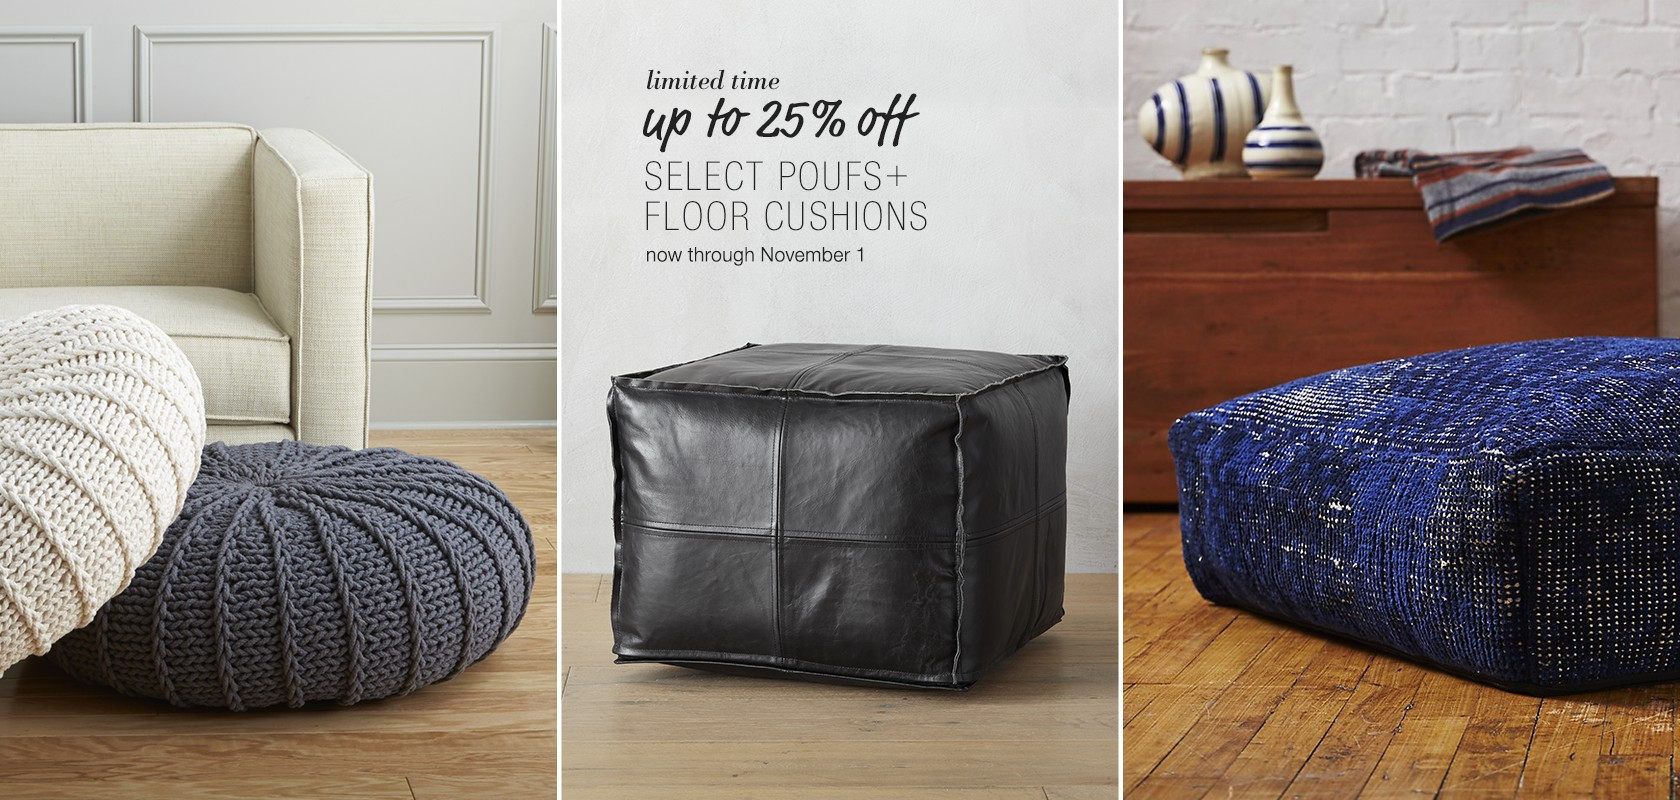 up to 25% off poufs and floor cushions